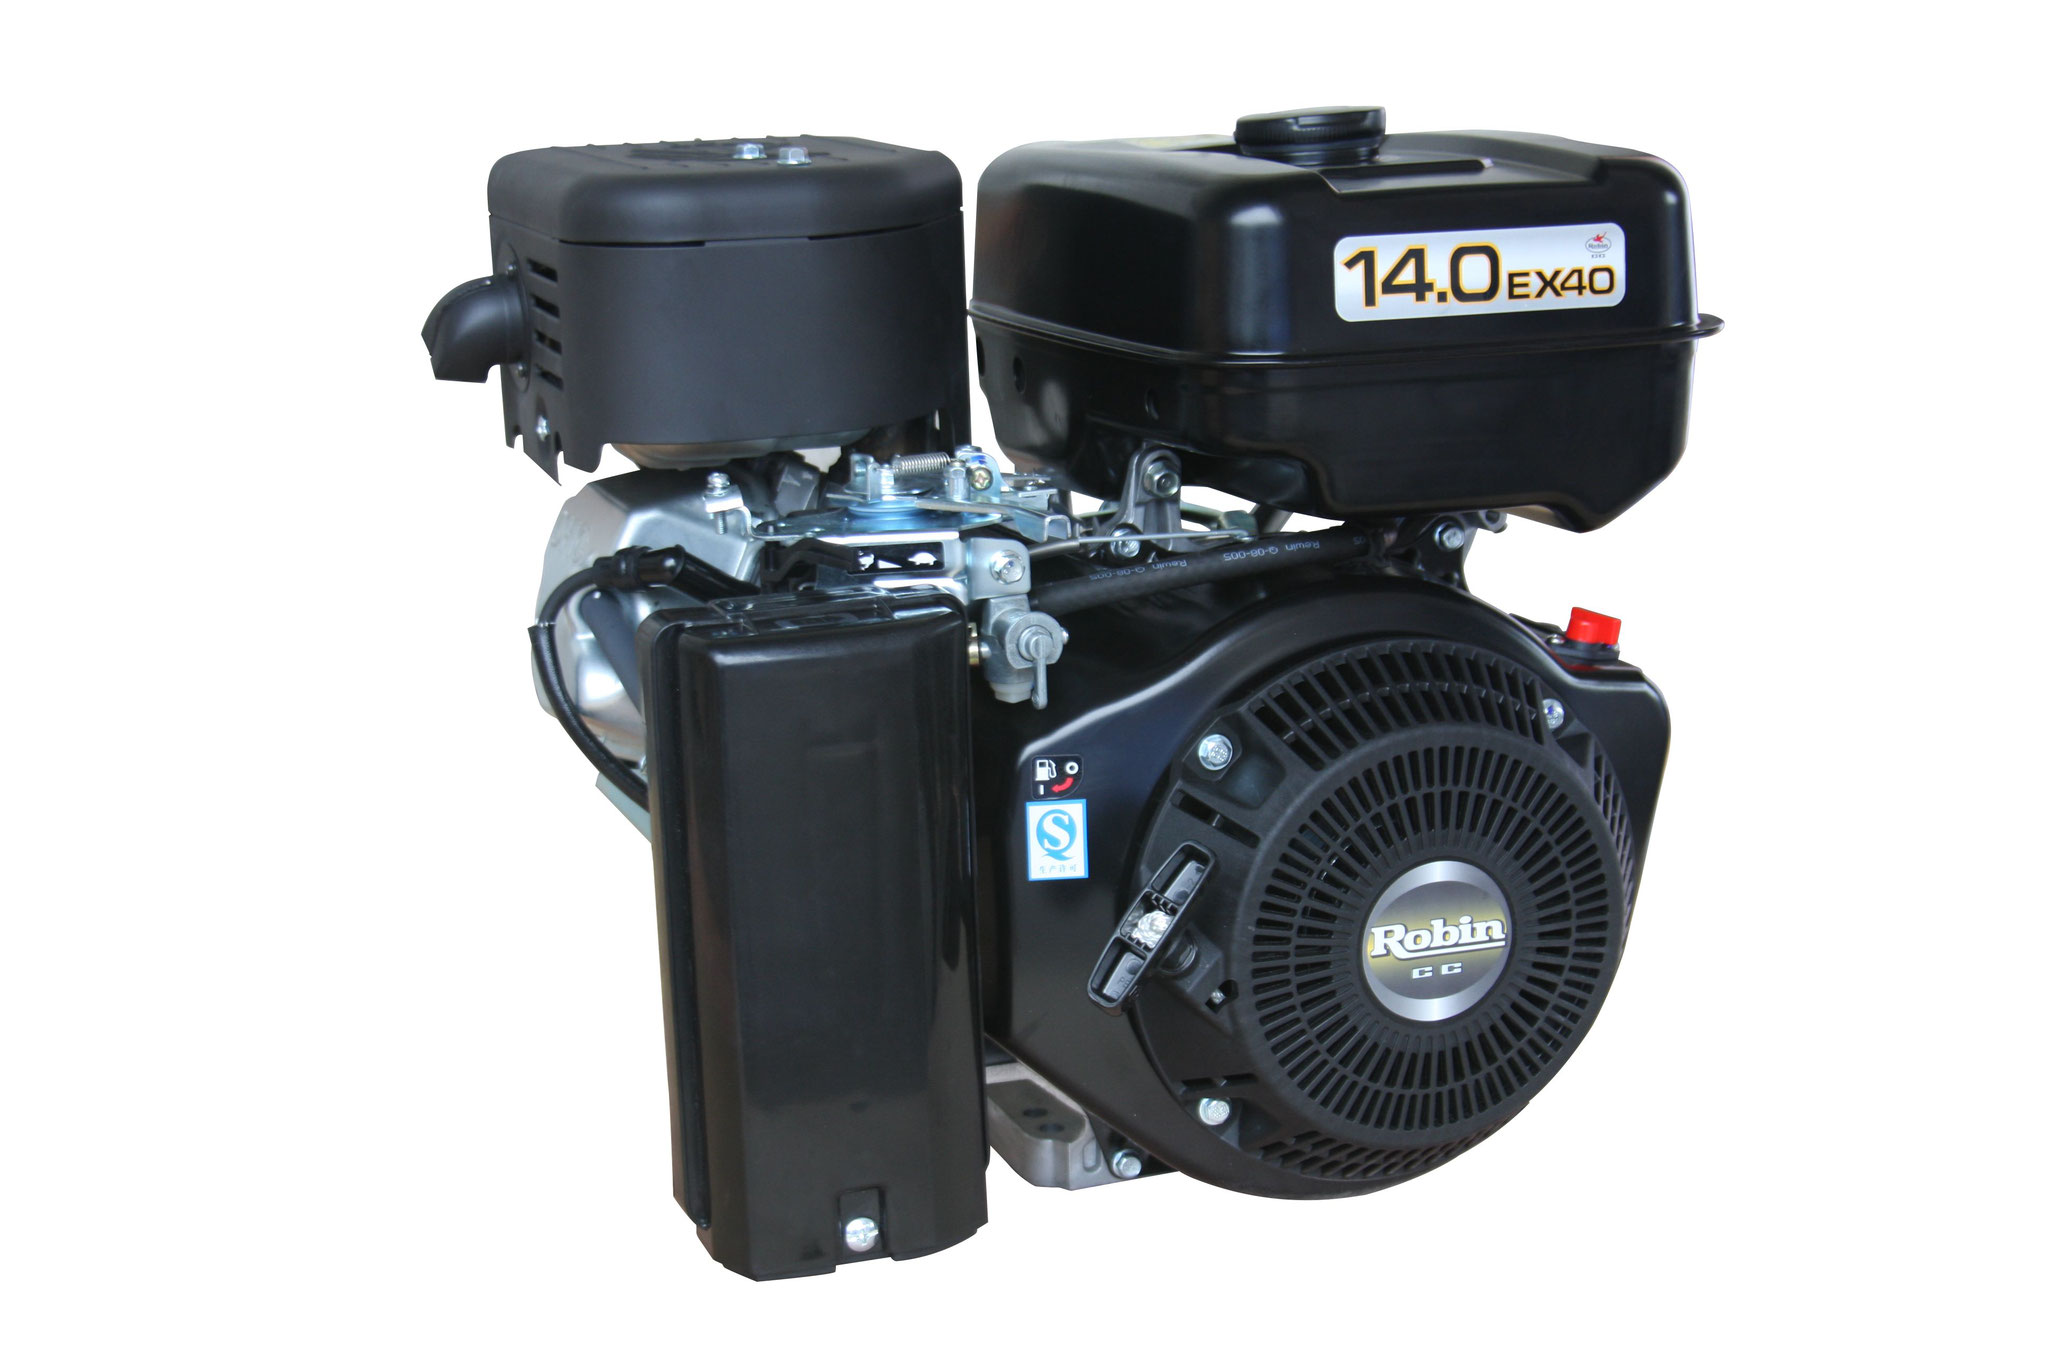 ROBIN Gasoline Engines